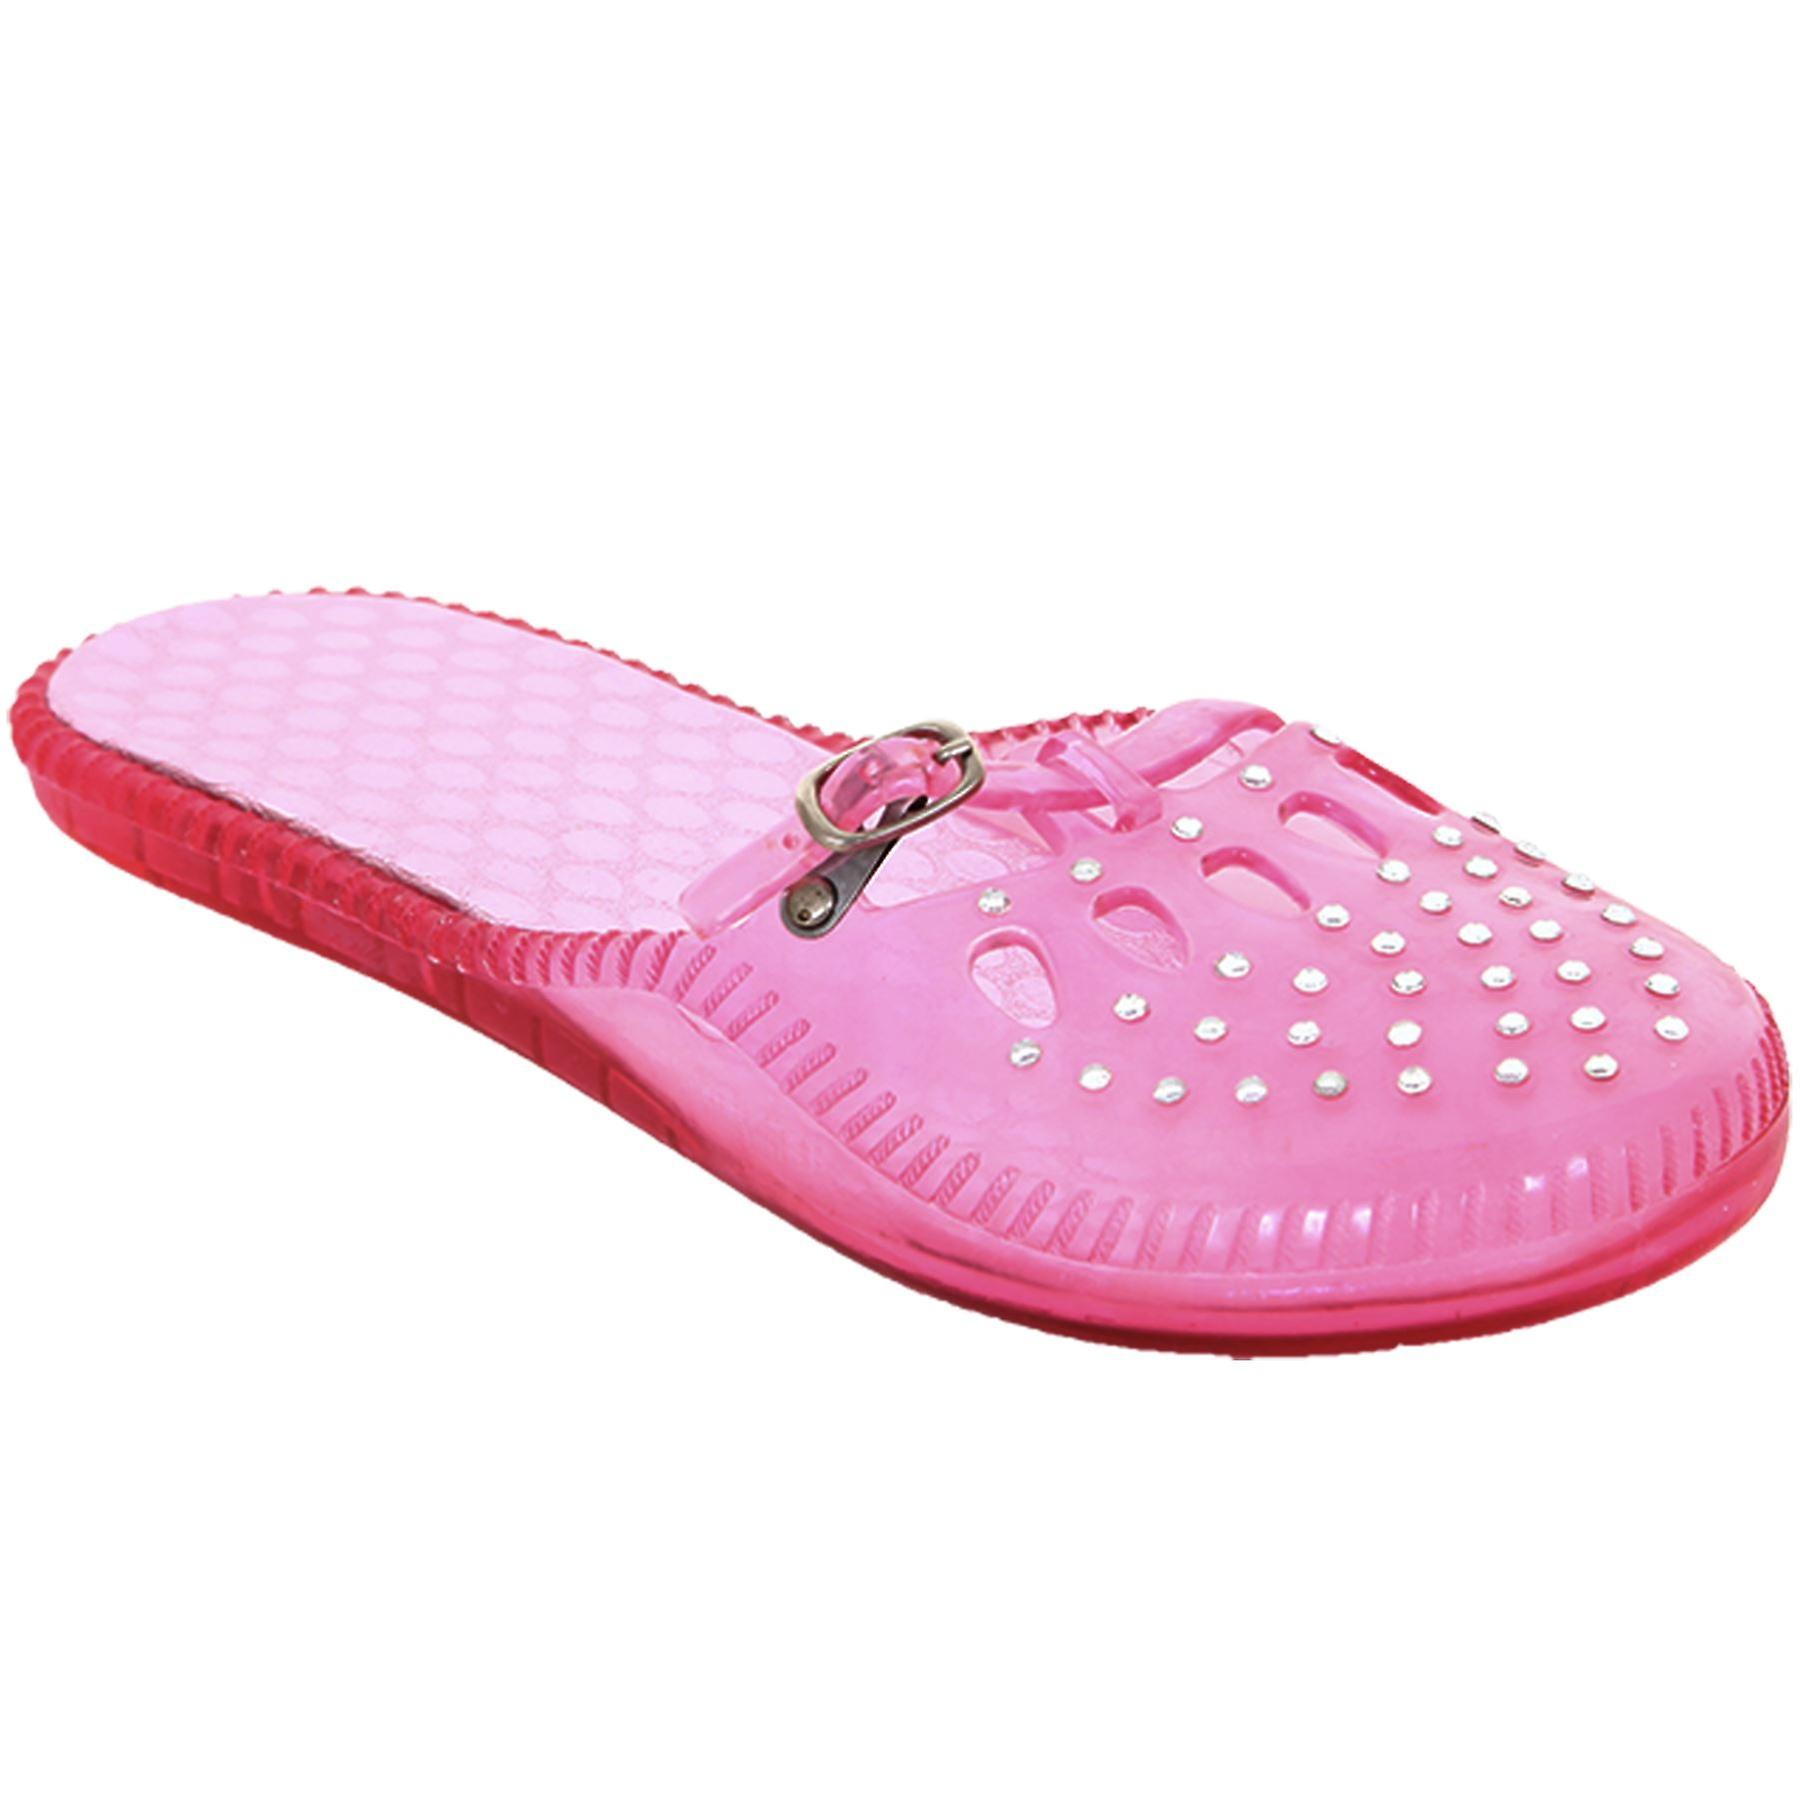 Ladies Silver Diamante Cut Out Slip On Jelly Women's White Pink Flats Shoes